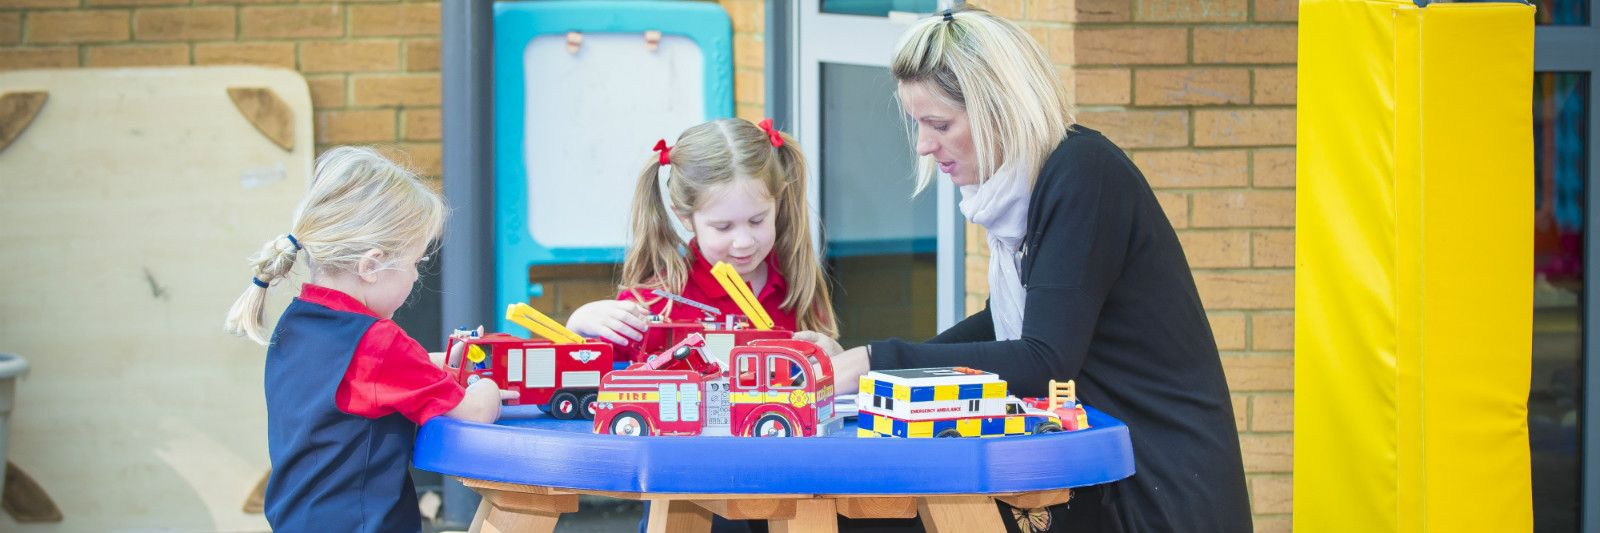 Oundle CE Primary School Admissions